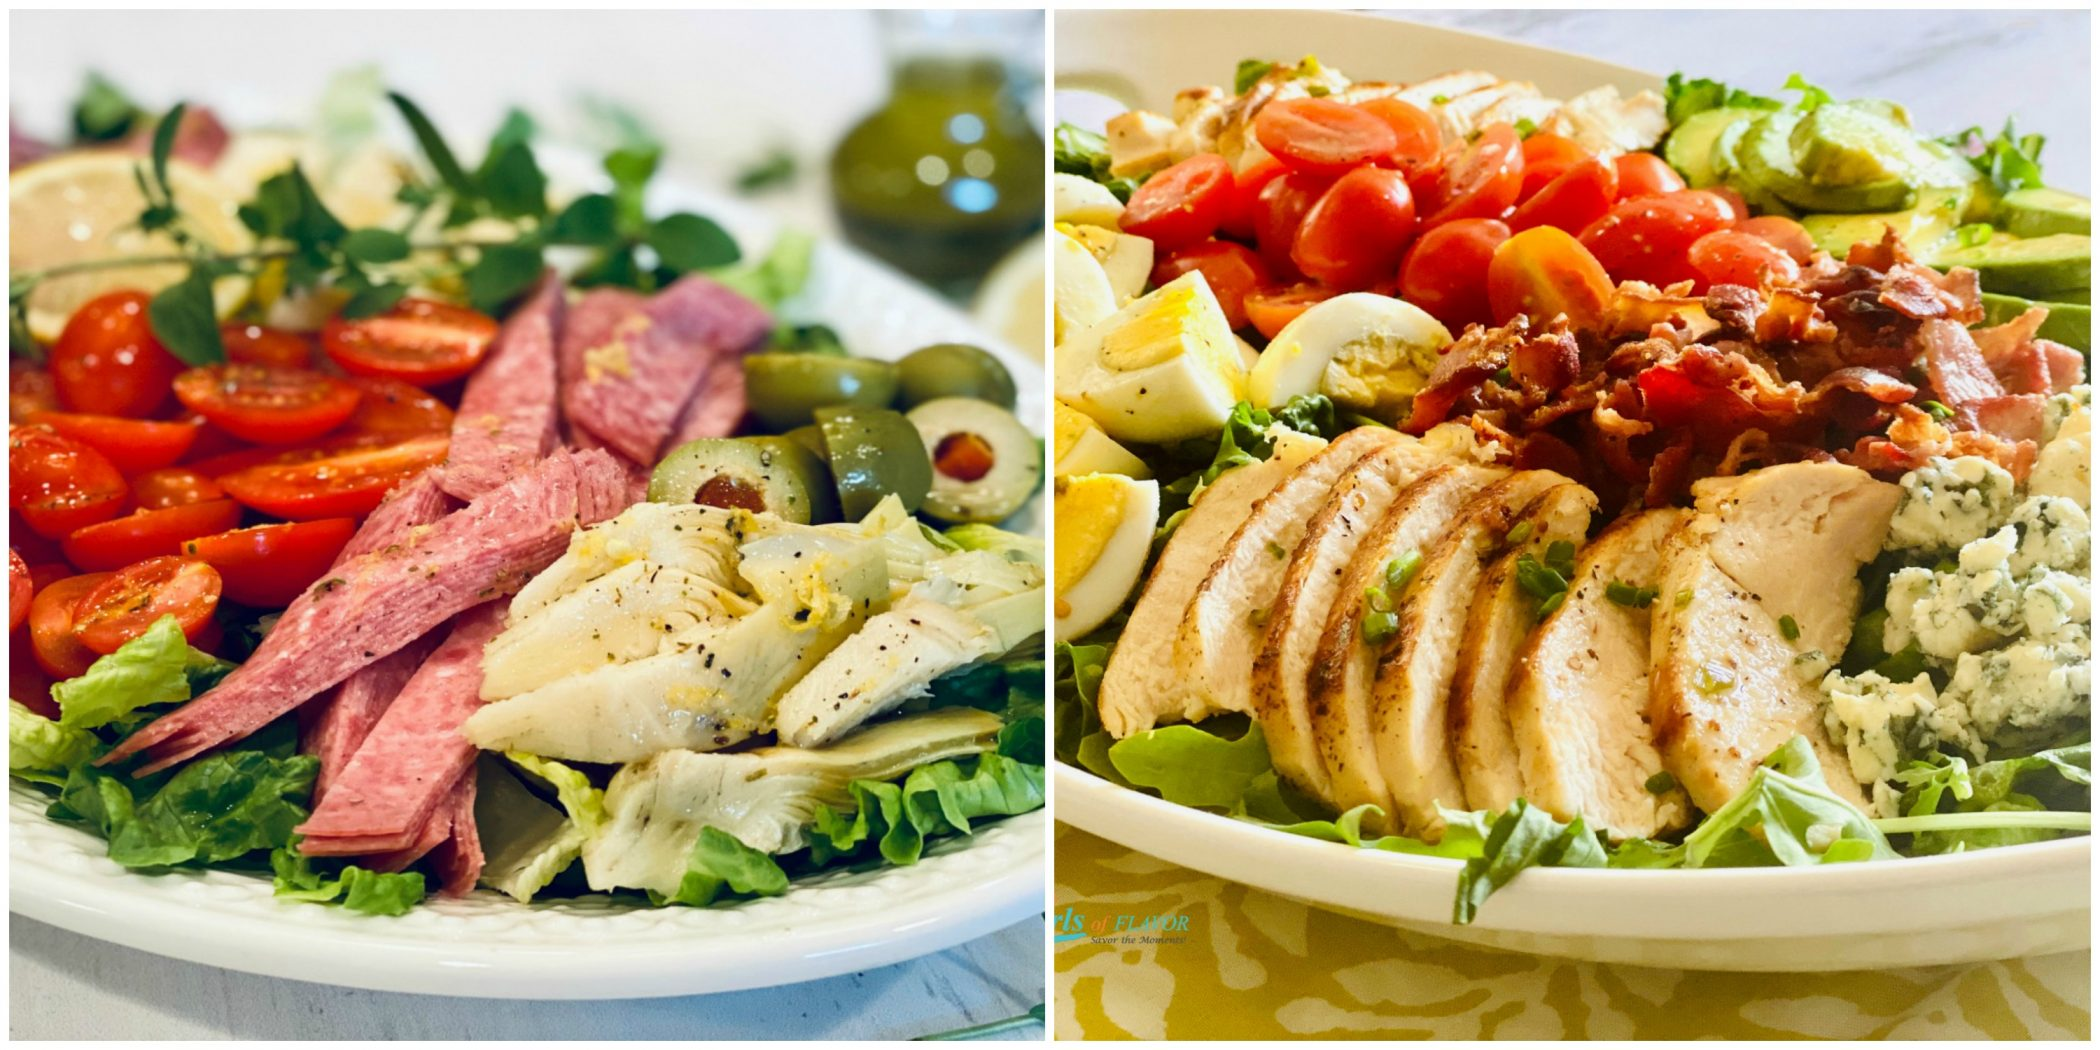 Italian chopped Salad and Cobb Salad